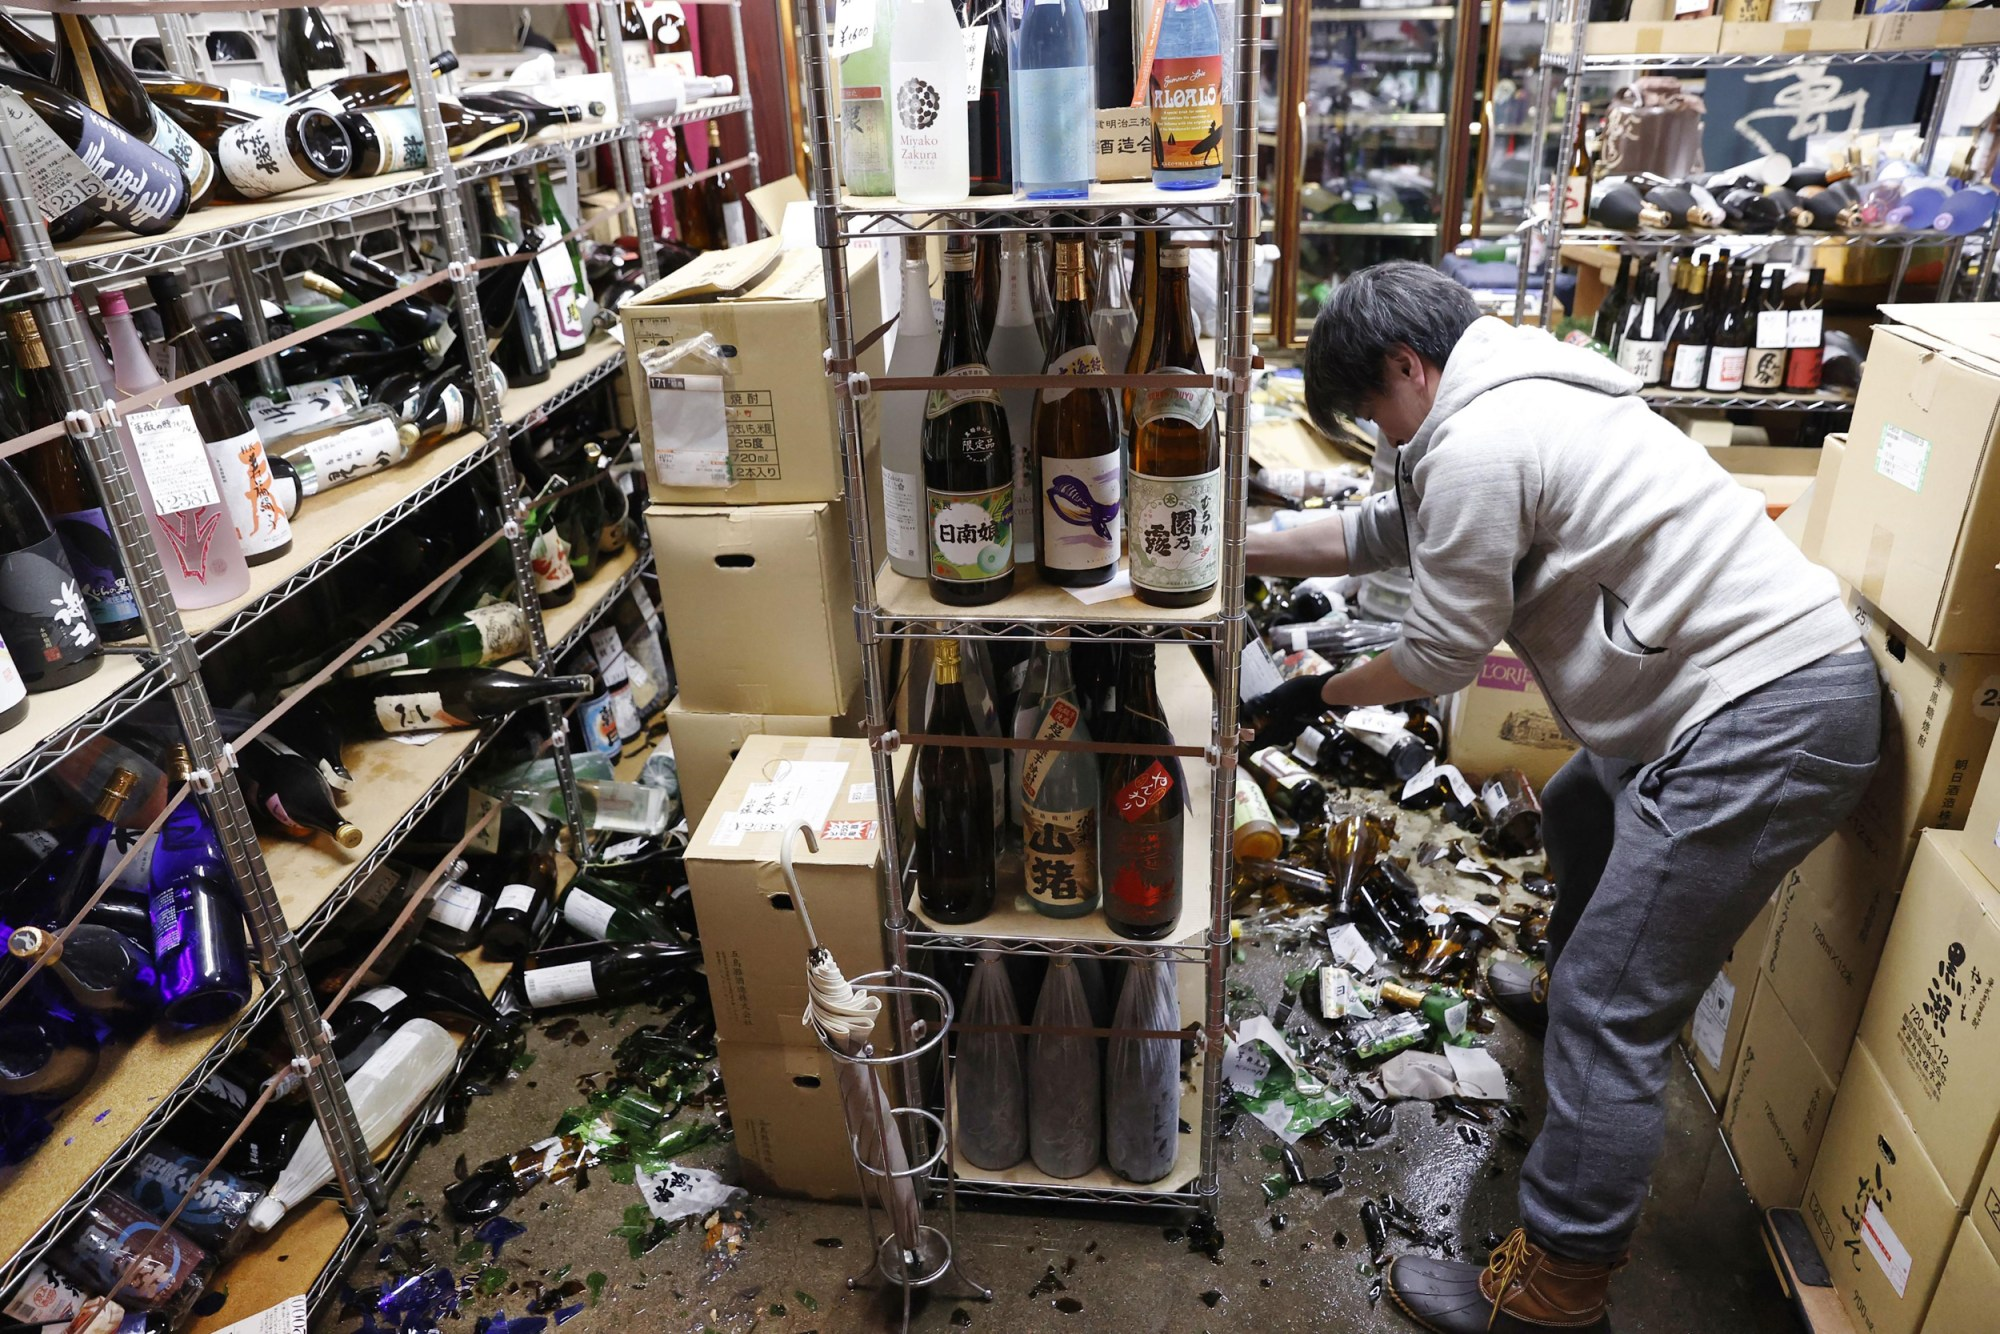 Magnitude 7.3 Earthquake Strikes Near Japan's Fukushima Nuclear Disaster Site